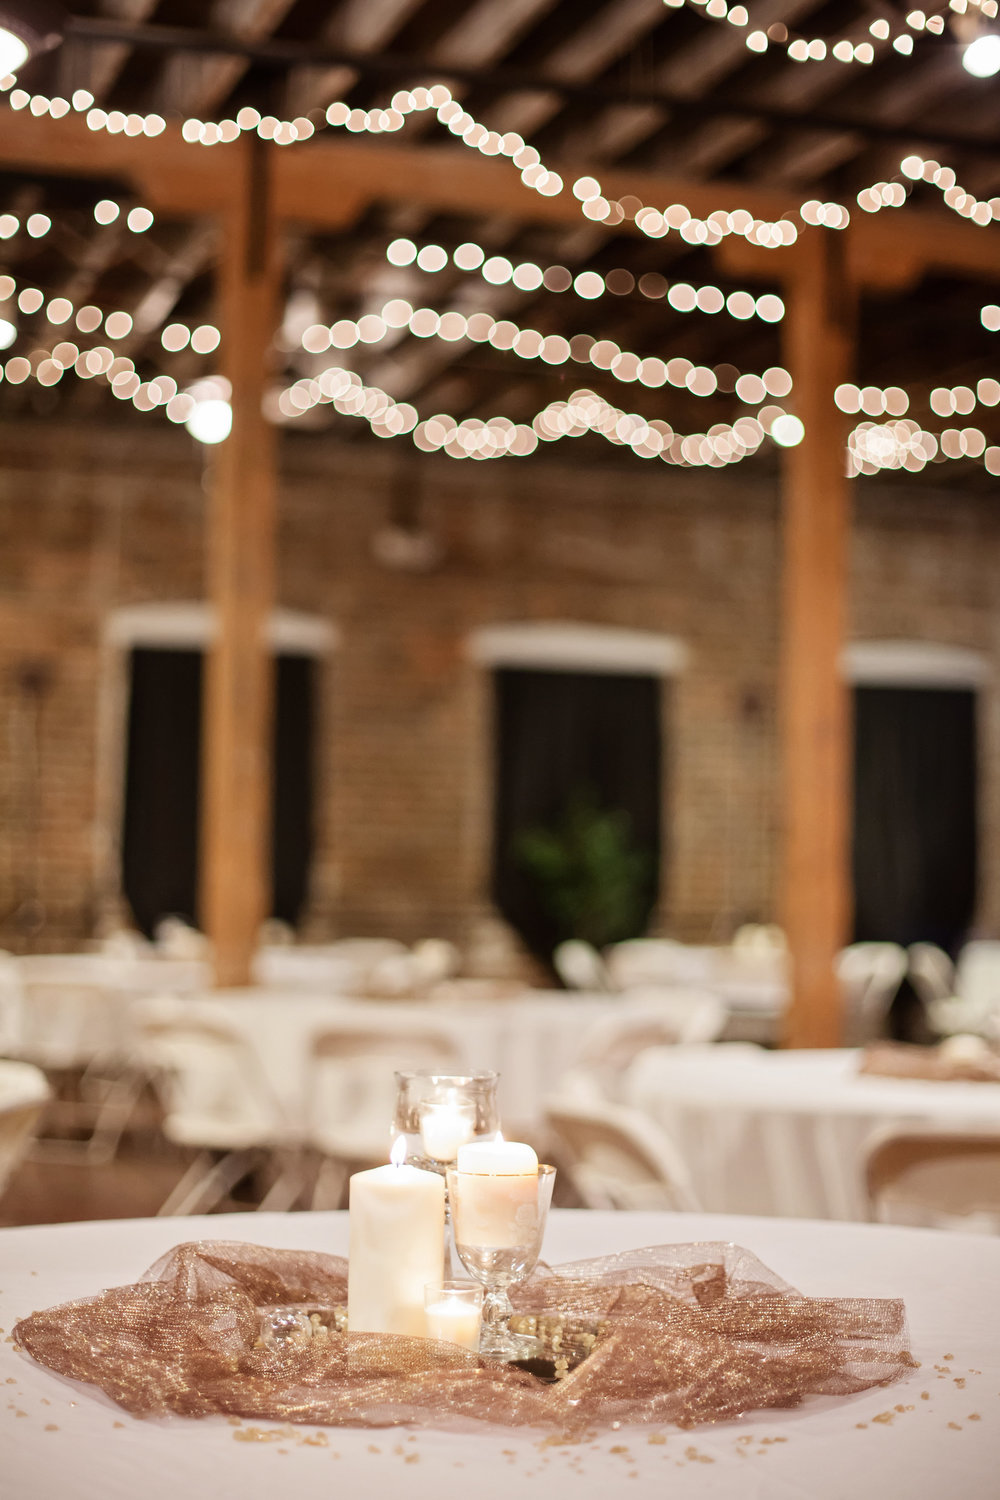 Centerpiece Decor at Industrial Glam Wedding at The Old Woolen Mill